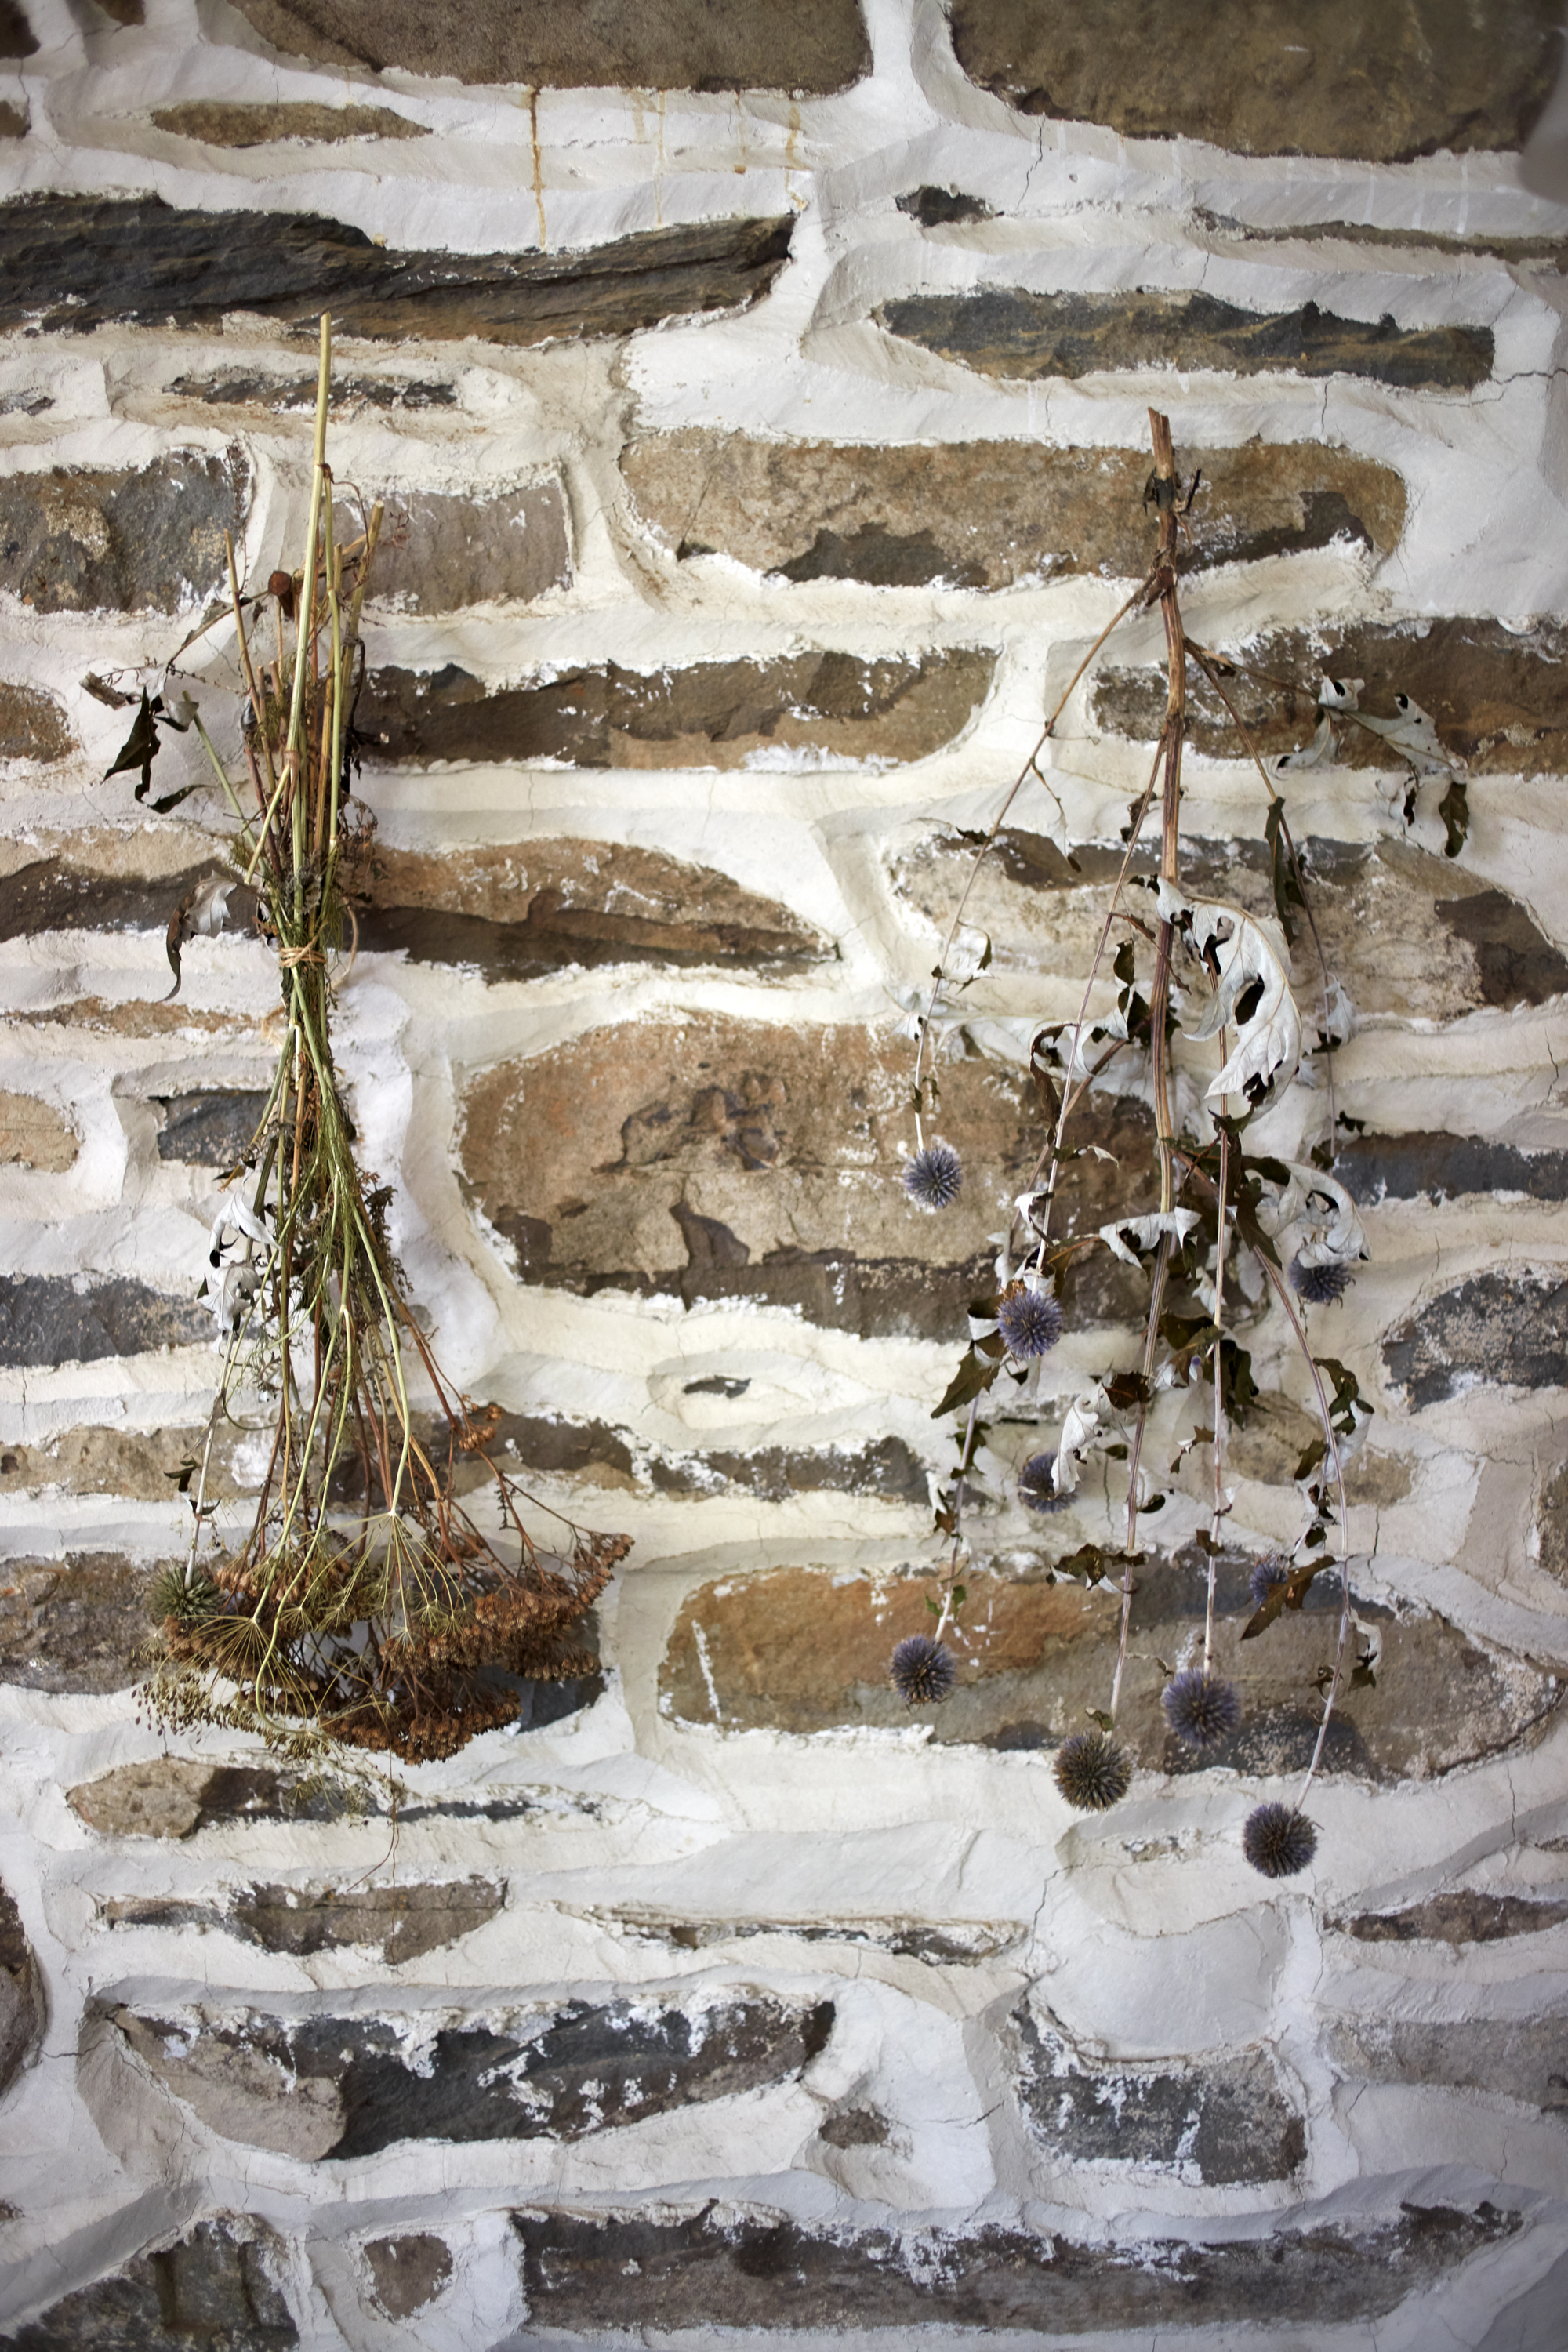 A detail of the stone wall with bunches of dried flowers hanging on it.